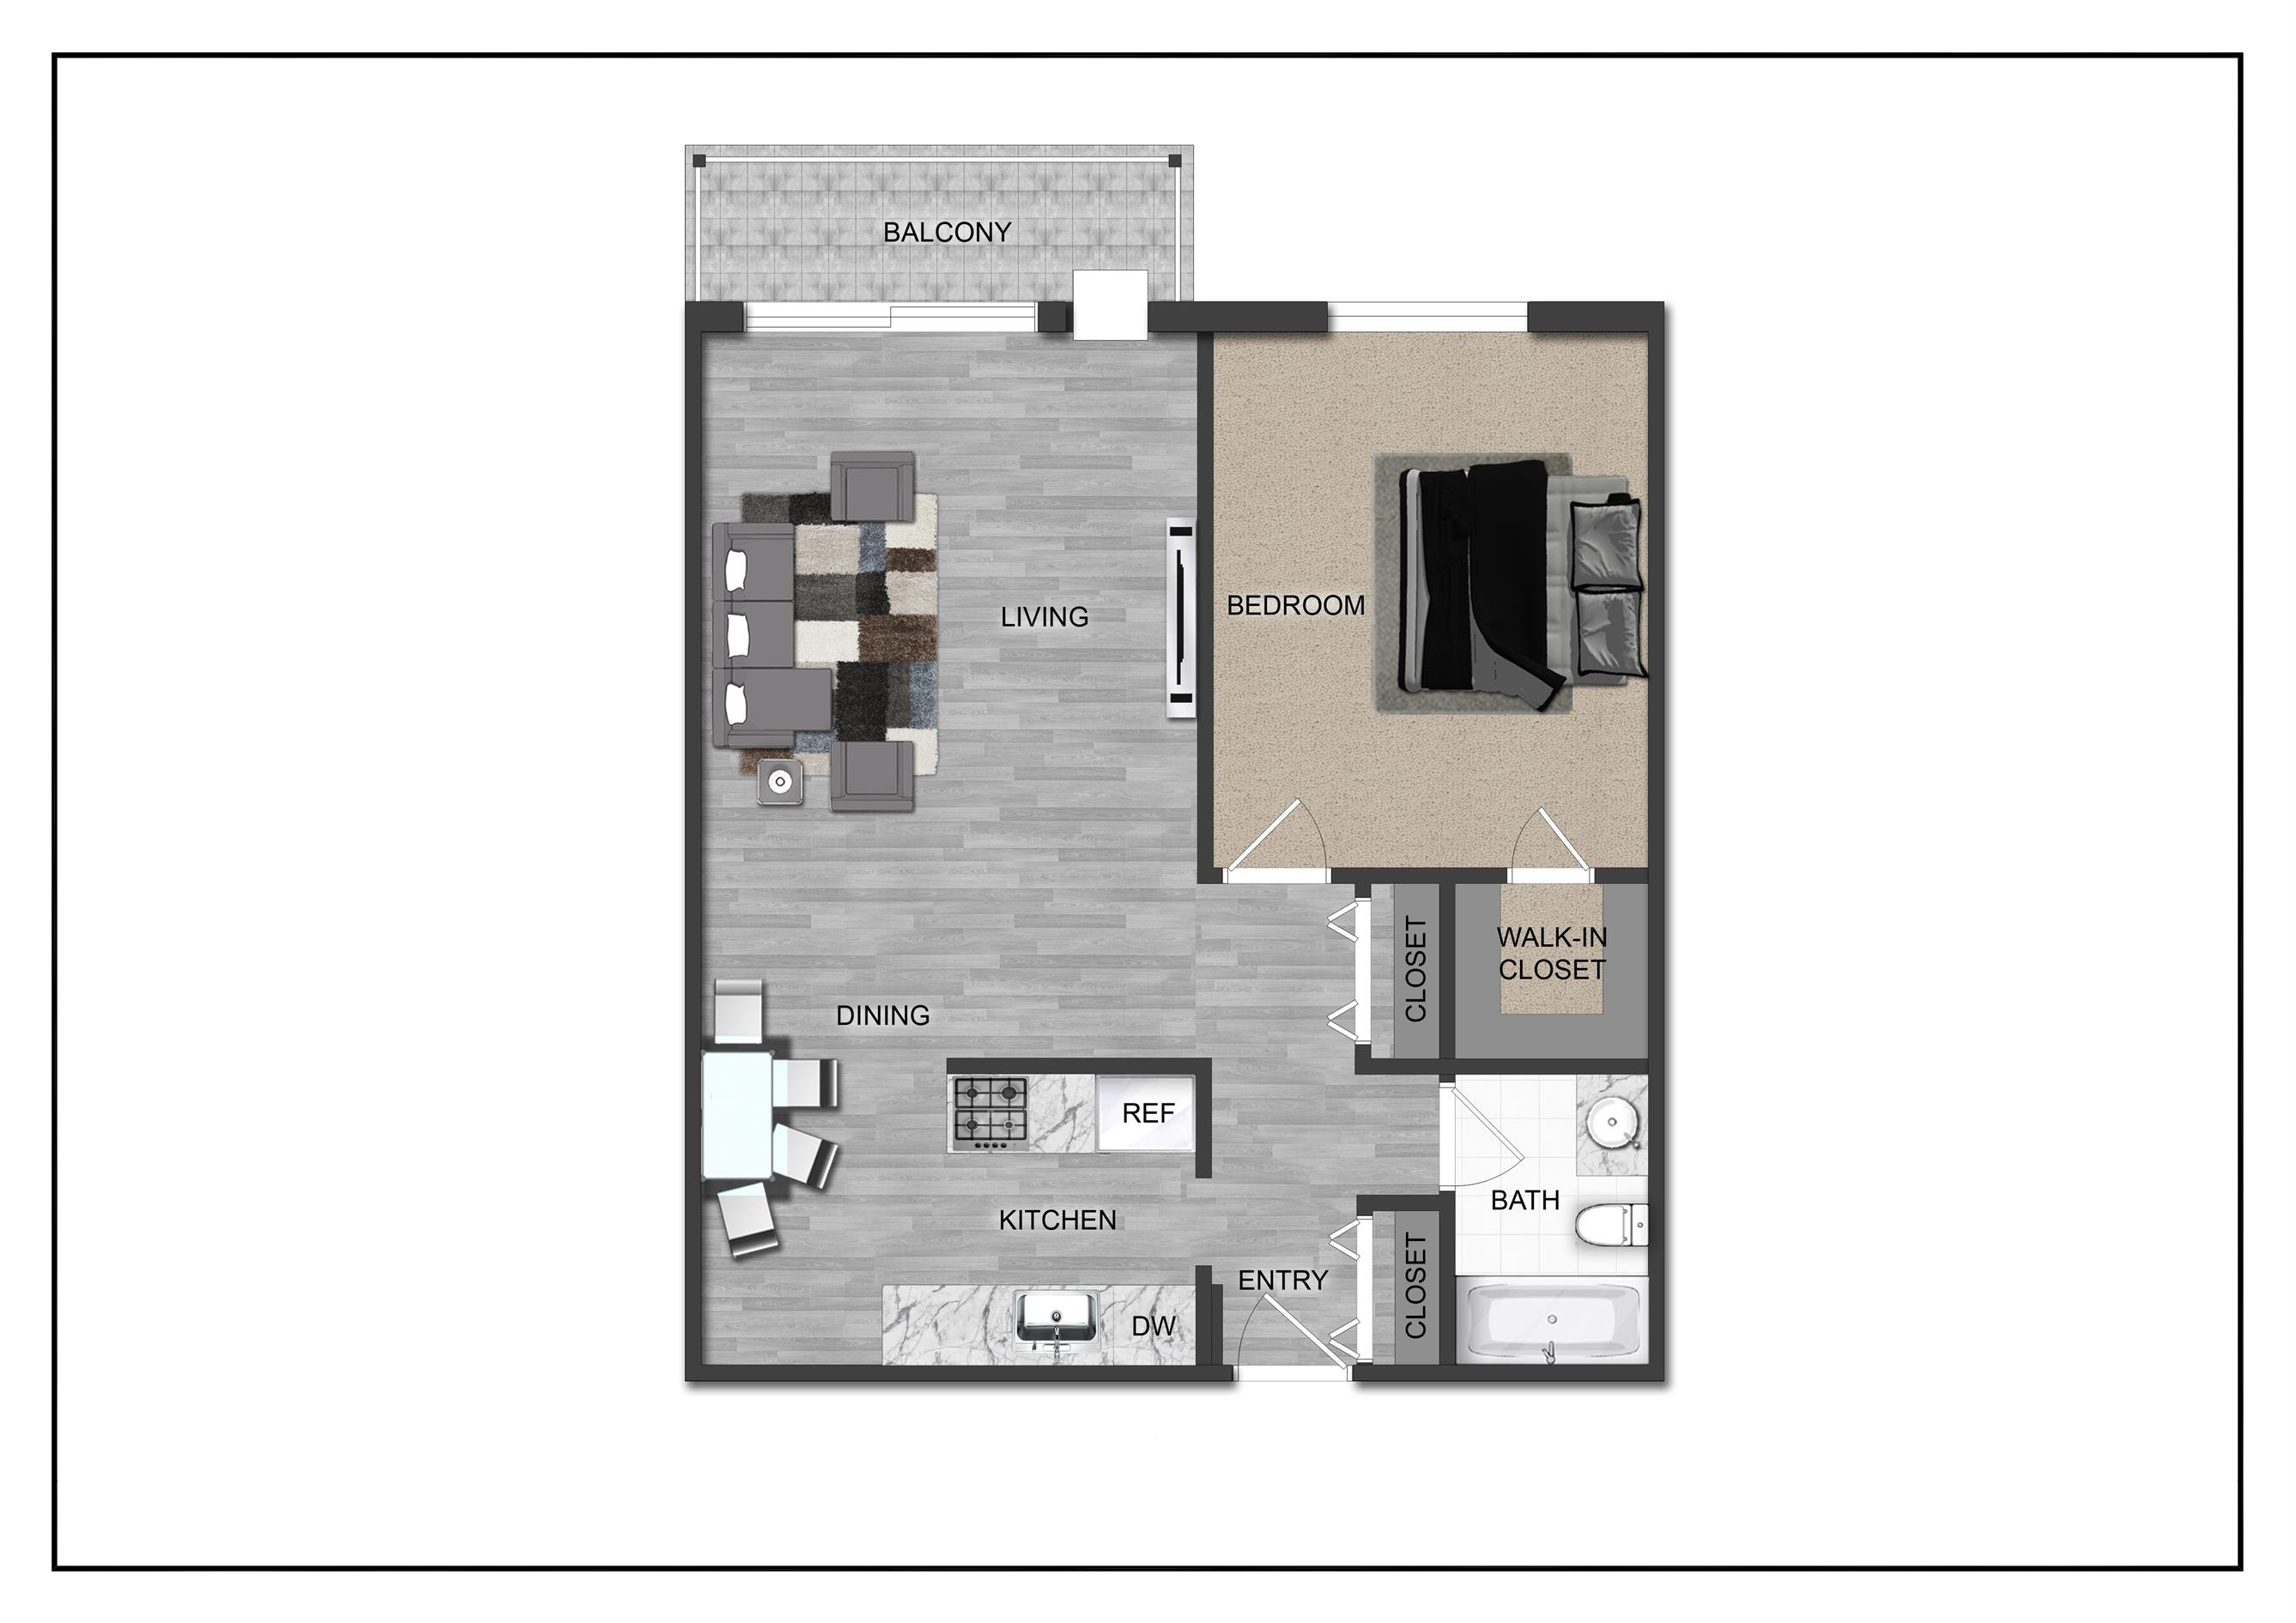 Image of 3030 Sumter Ave N, # 106